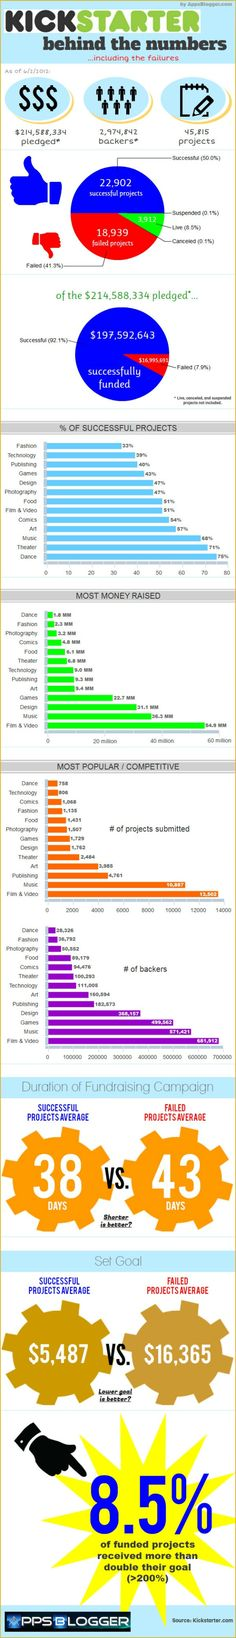 About 41% of #Kickstarter Projects Fail [INFOGRAPHIC] #SamanthaMurphy #Mashable 6/12/2012